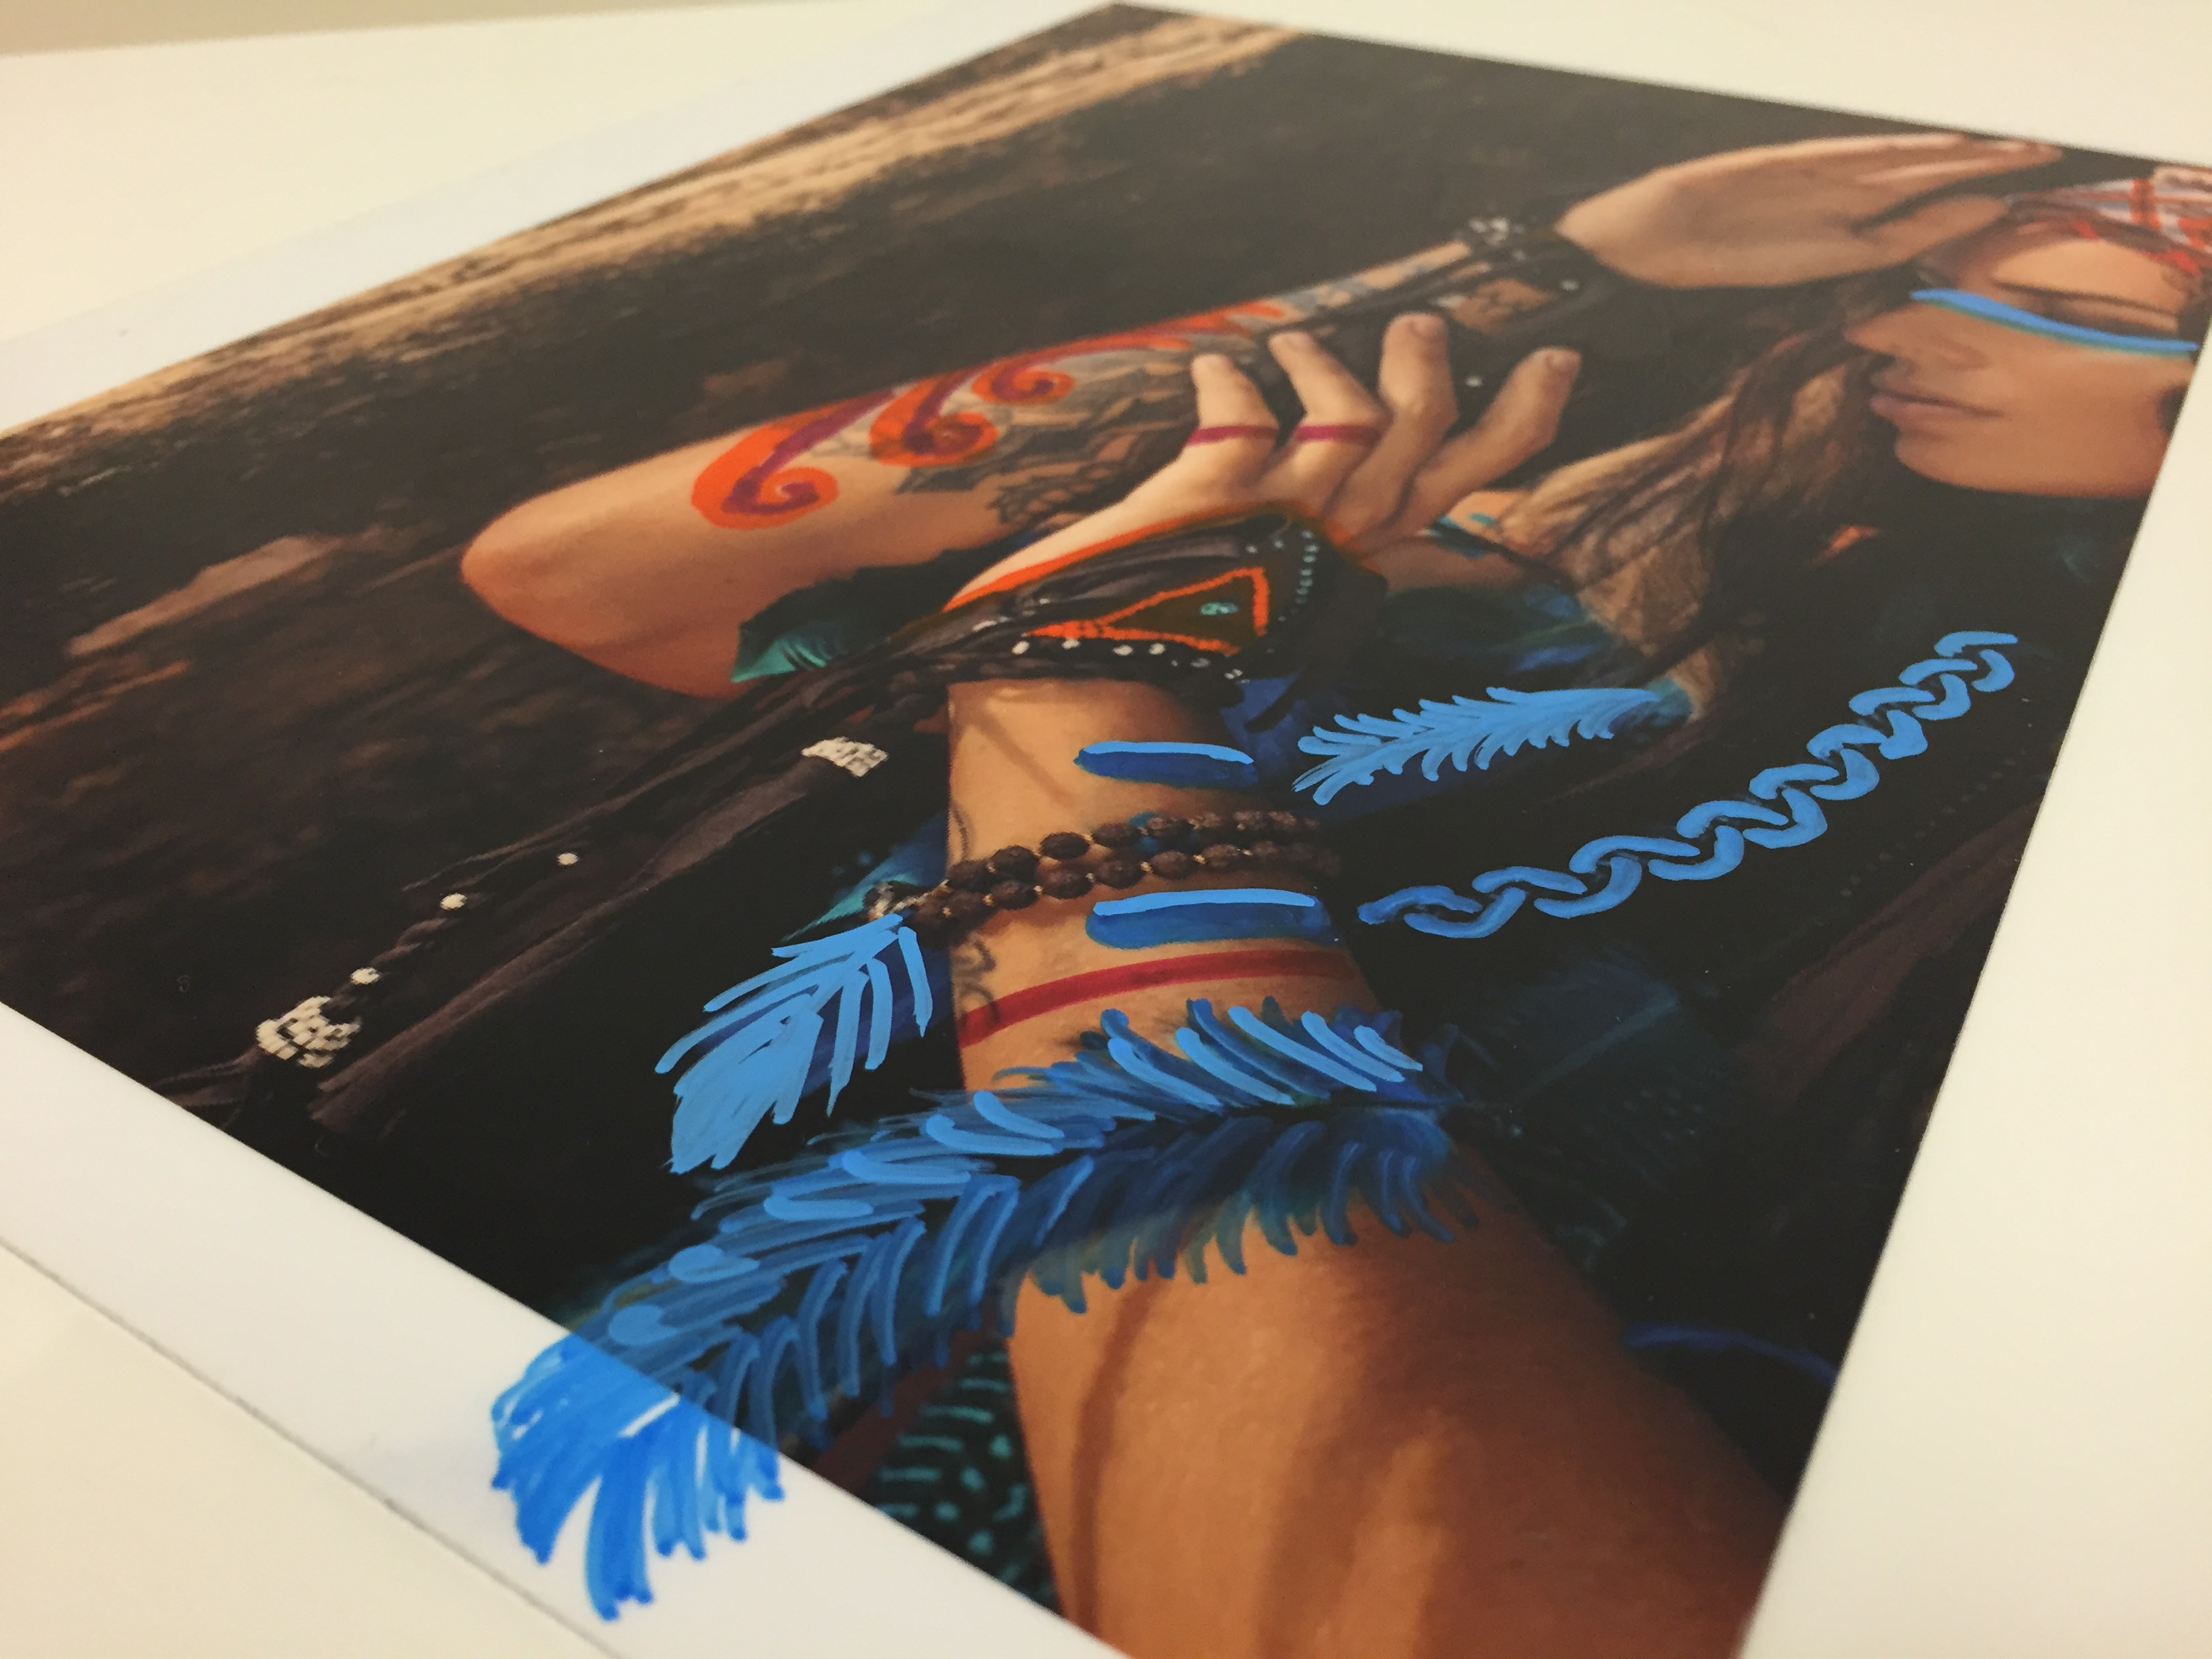 embellishing laminated aqueous metal prints sharpie